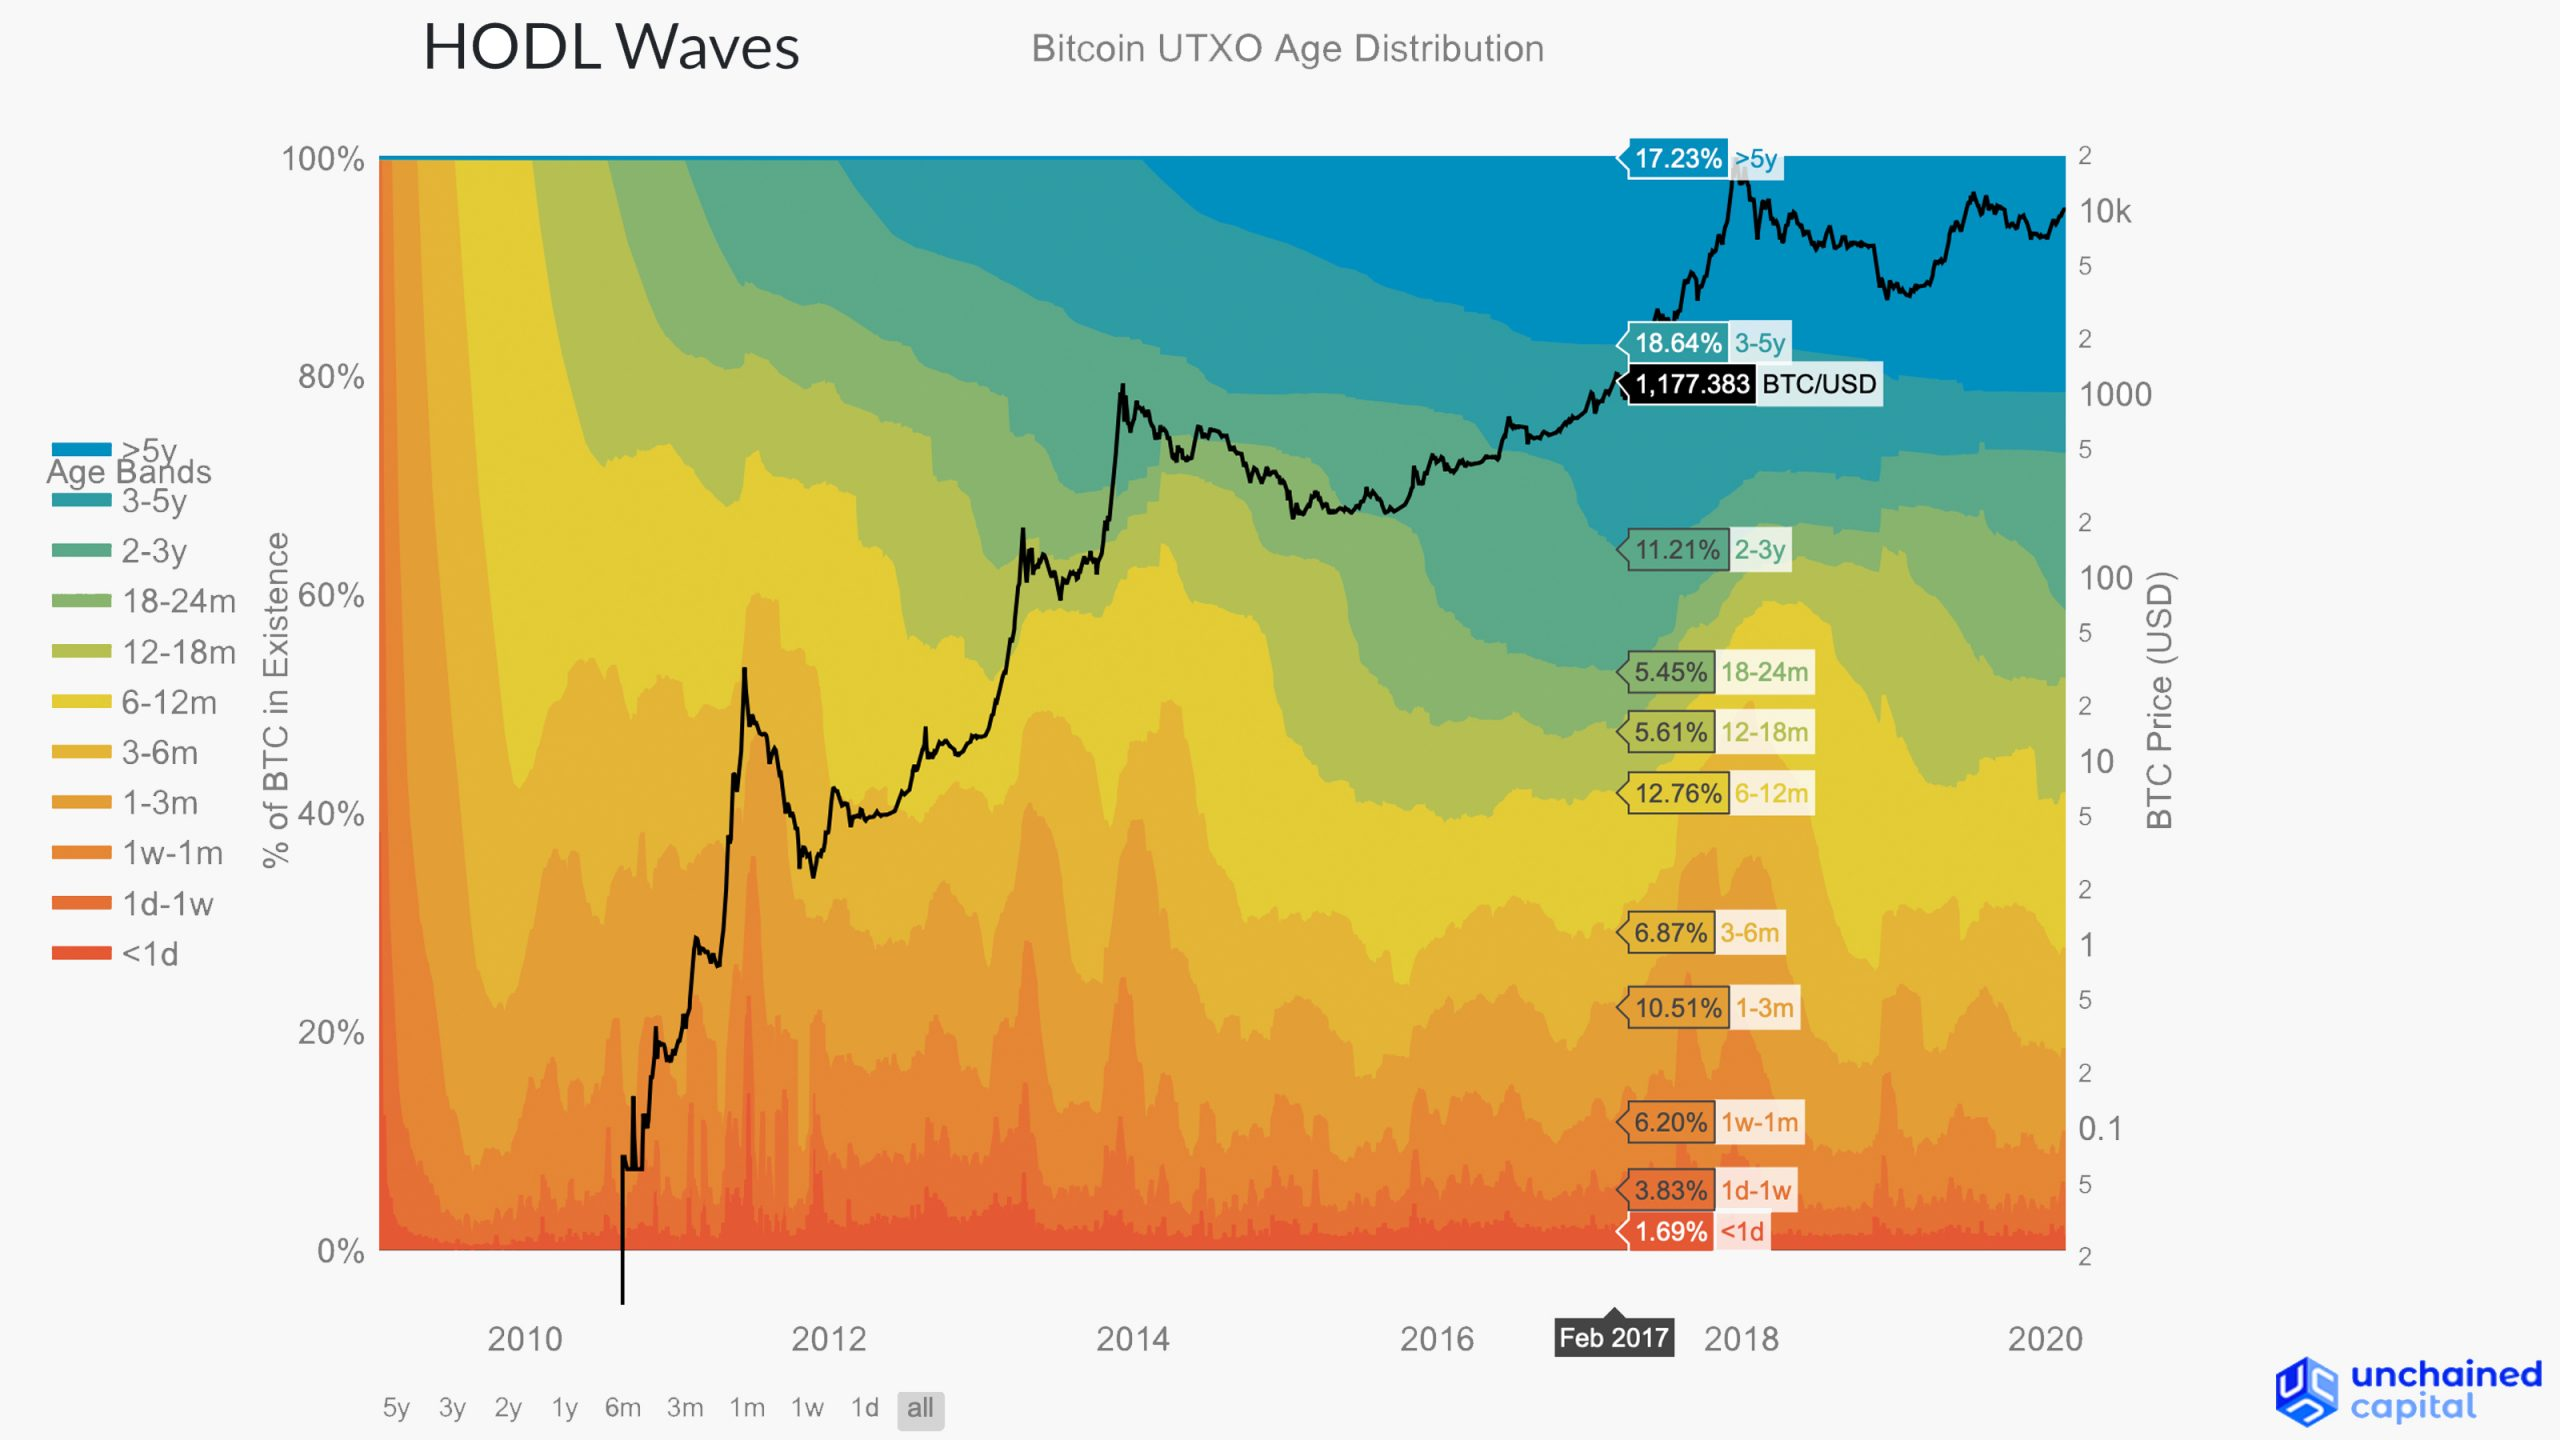 HODL Waves Chart Reveals Bitcoin Holders' Firm Grip - 42% Hasn't Moved in 2 Years